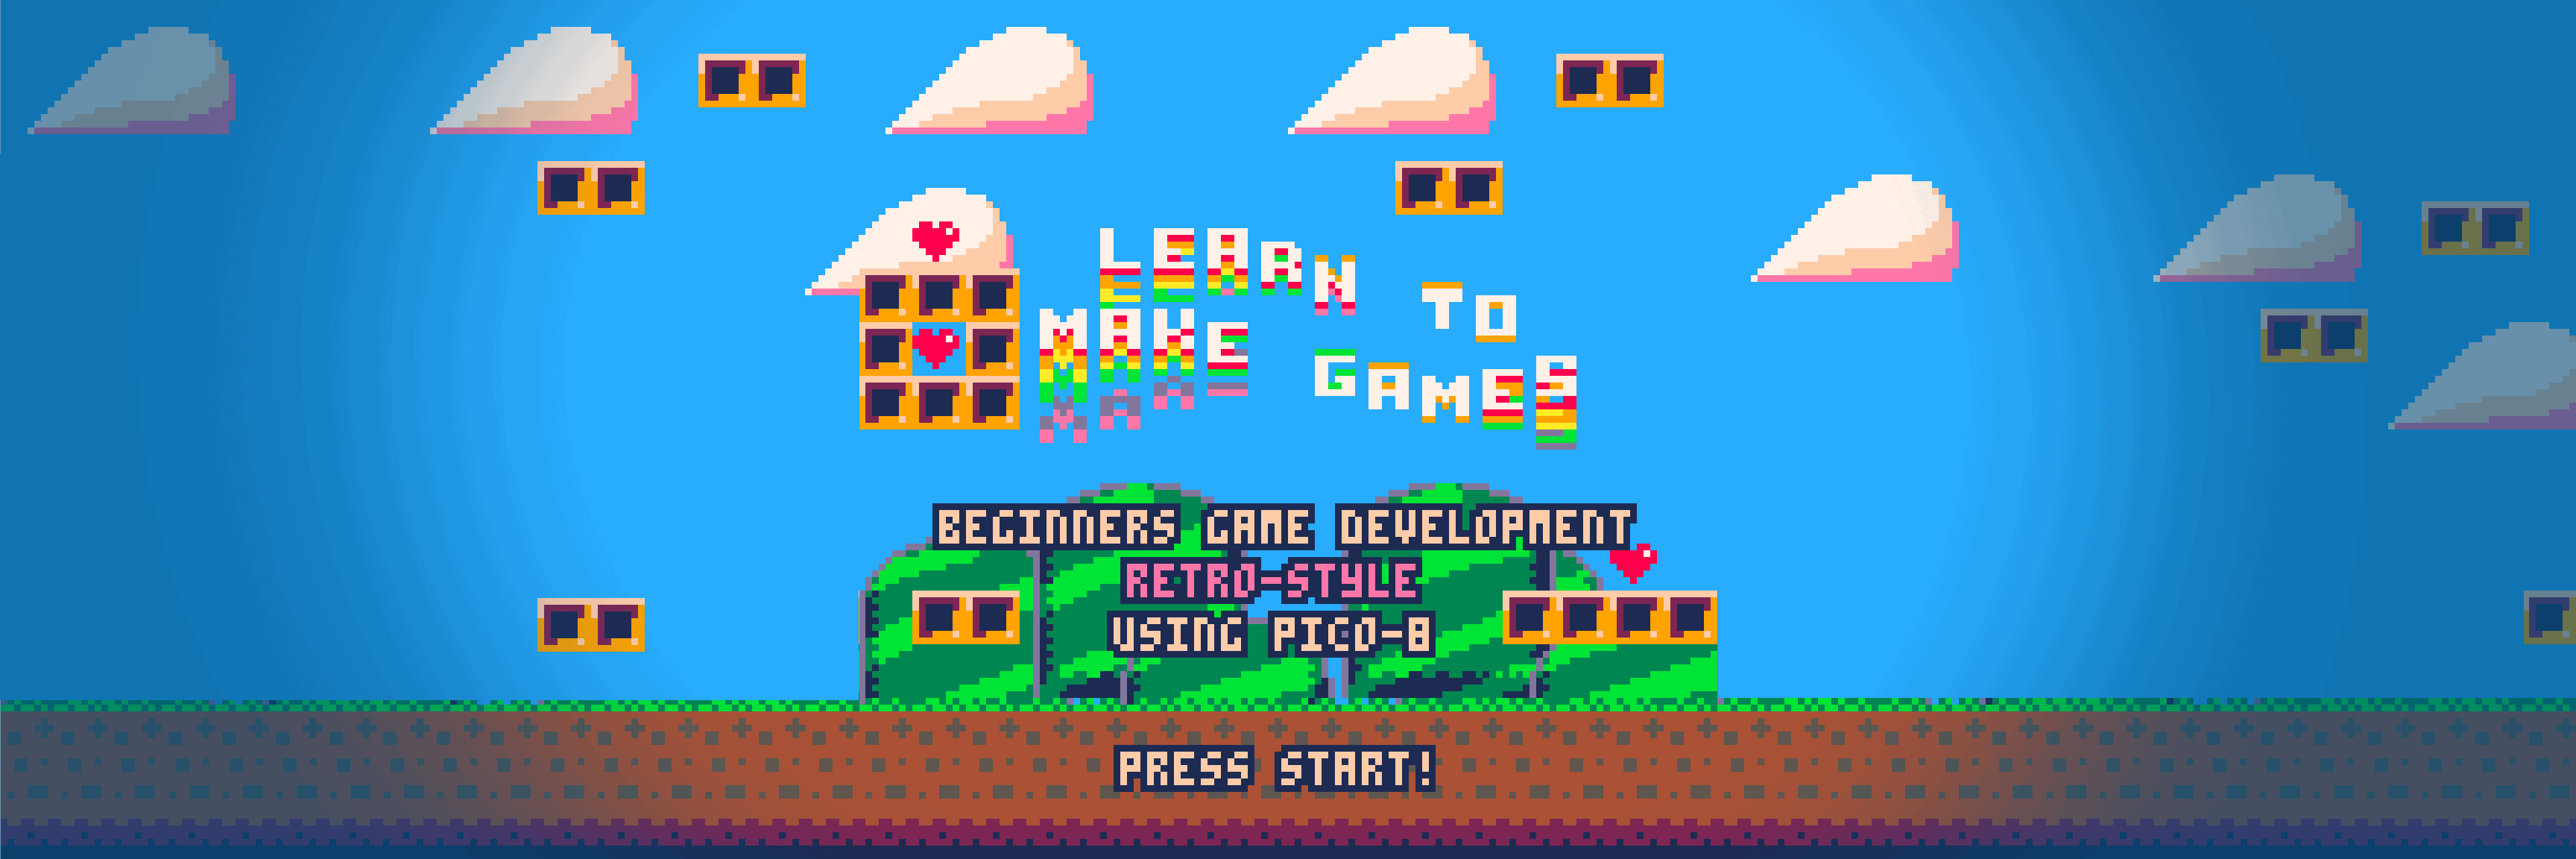 Beginners Game Development with PICO-8